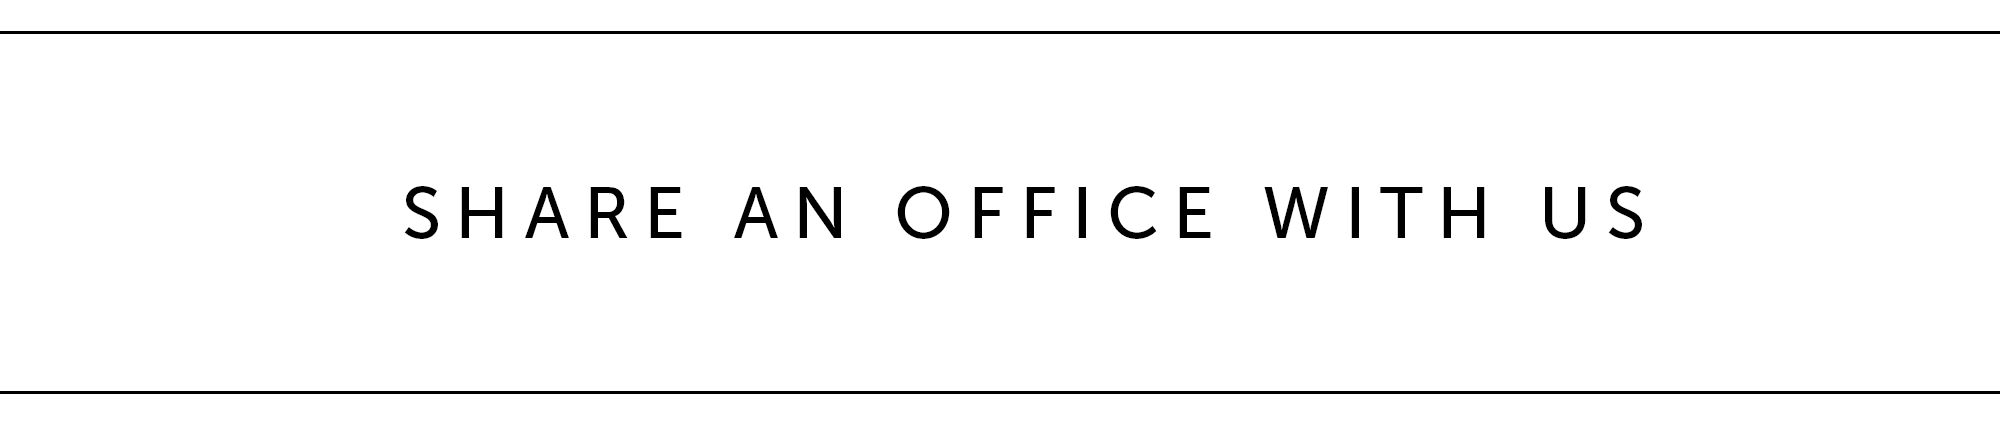 Share an office with us